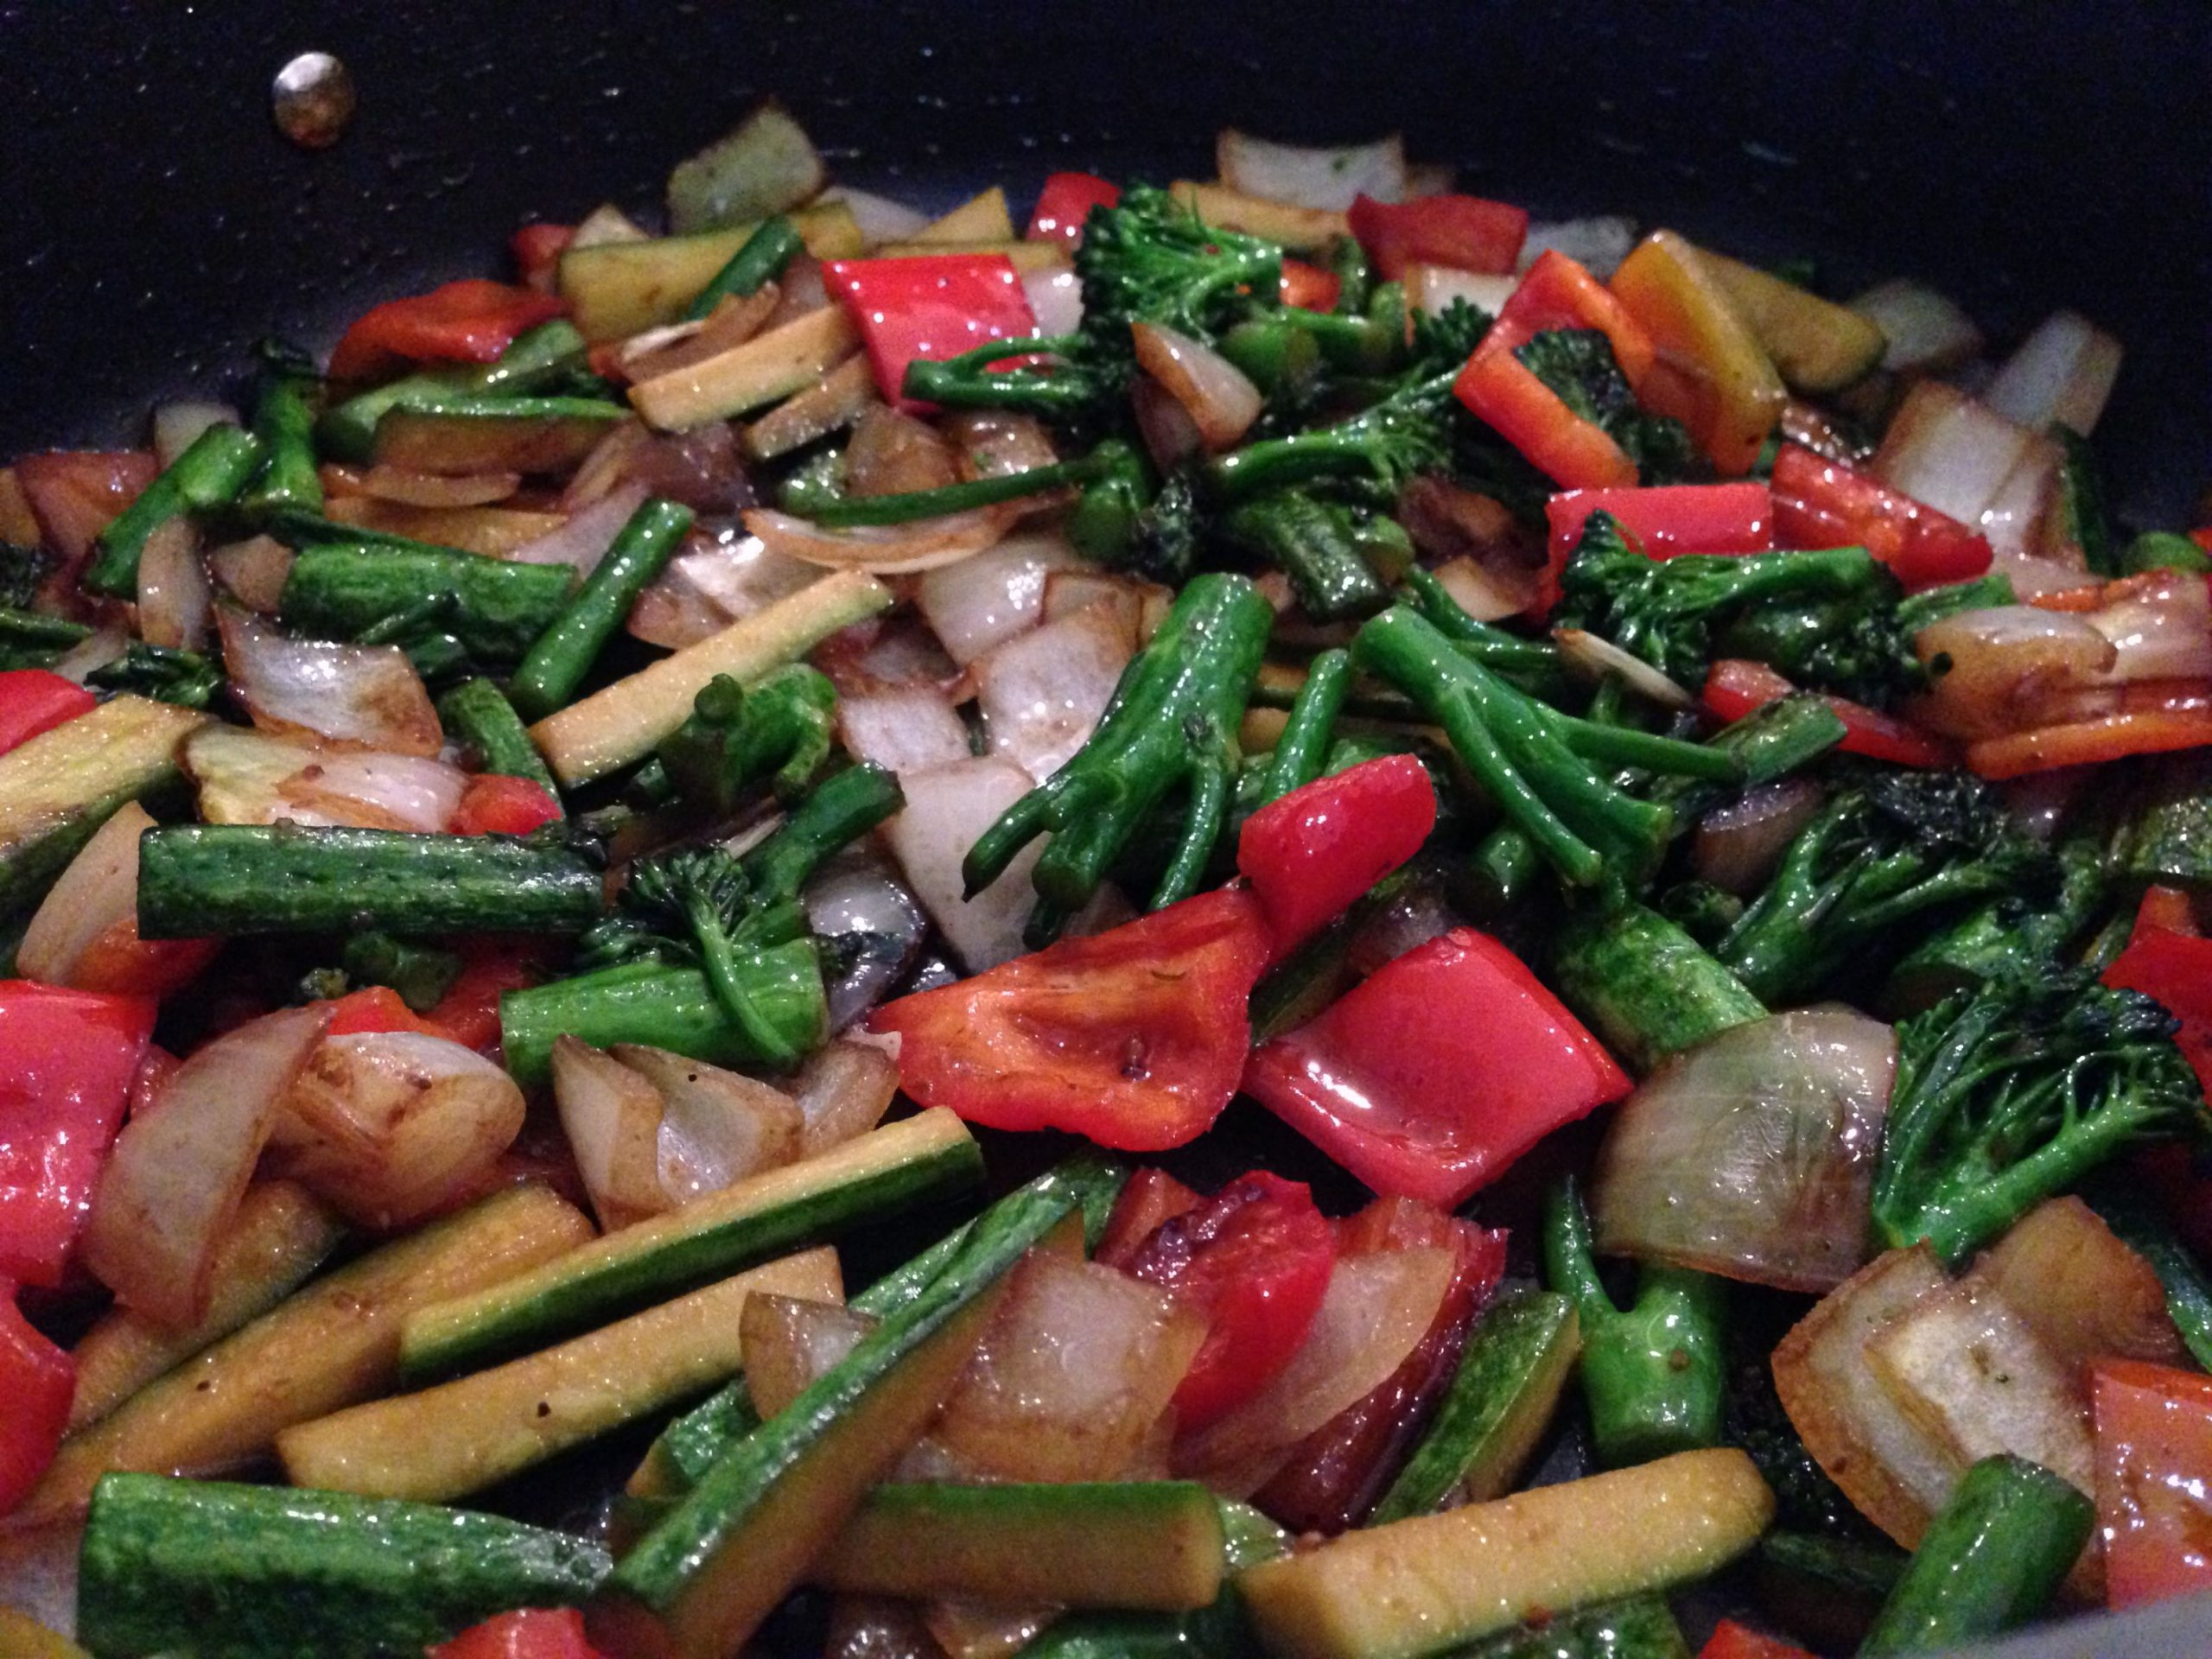 Japanese Stir Fried Veg